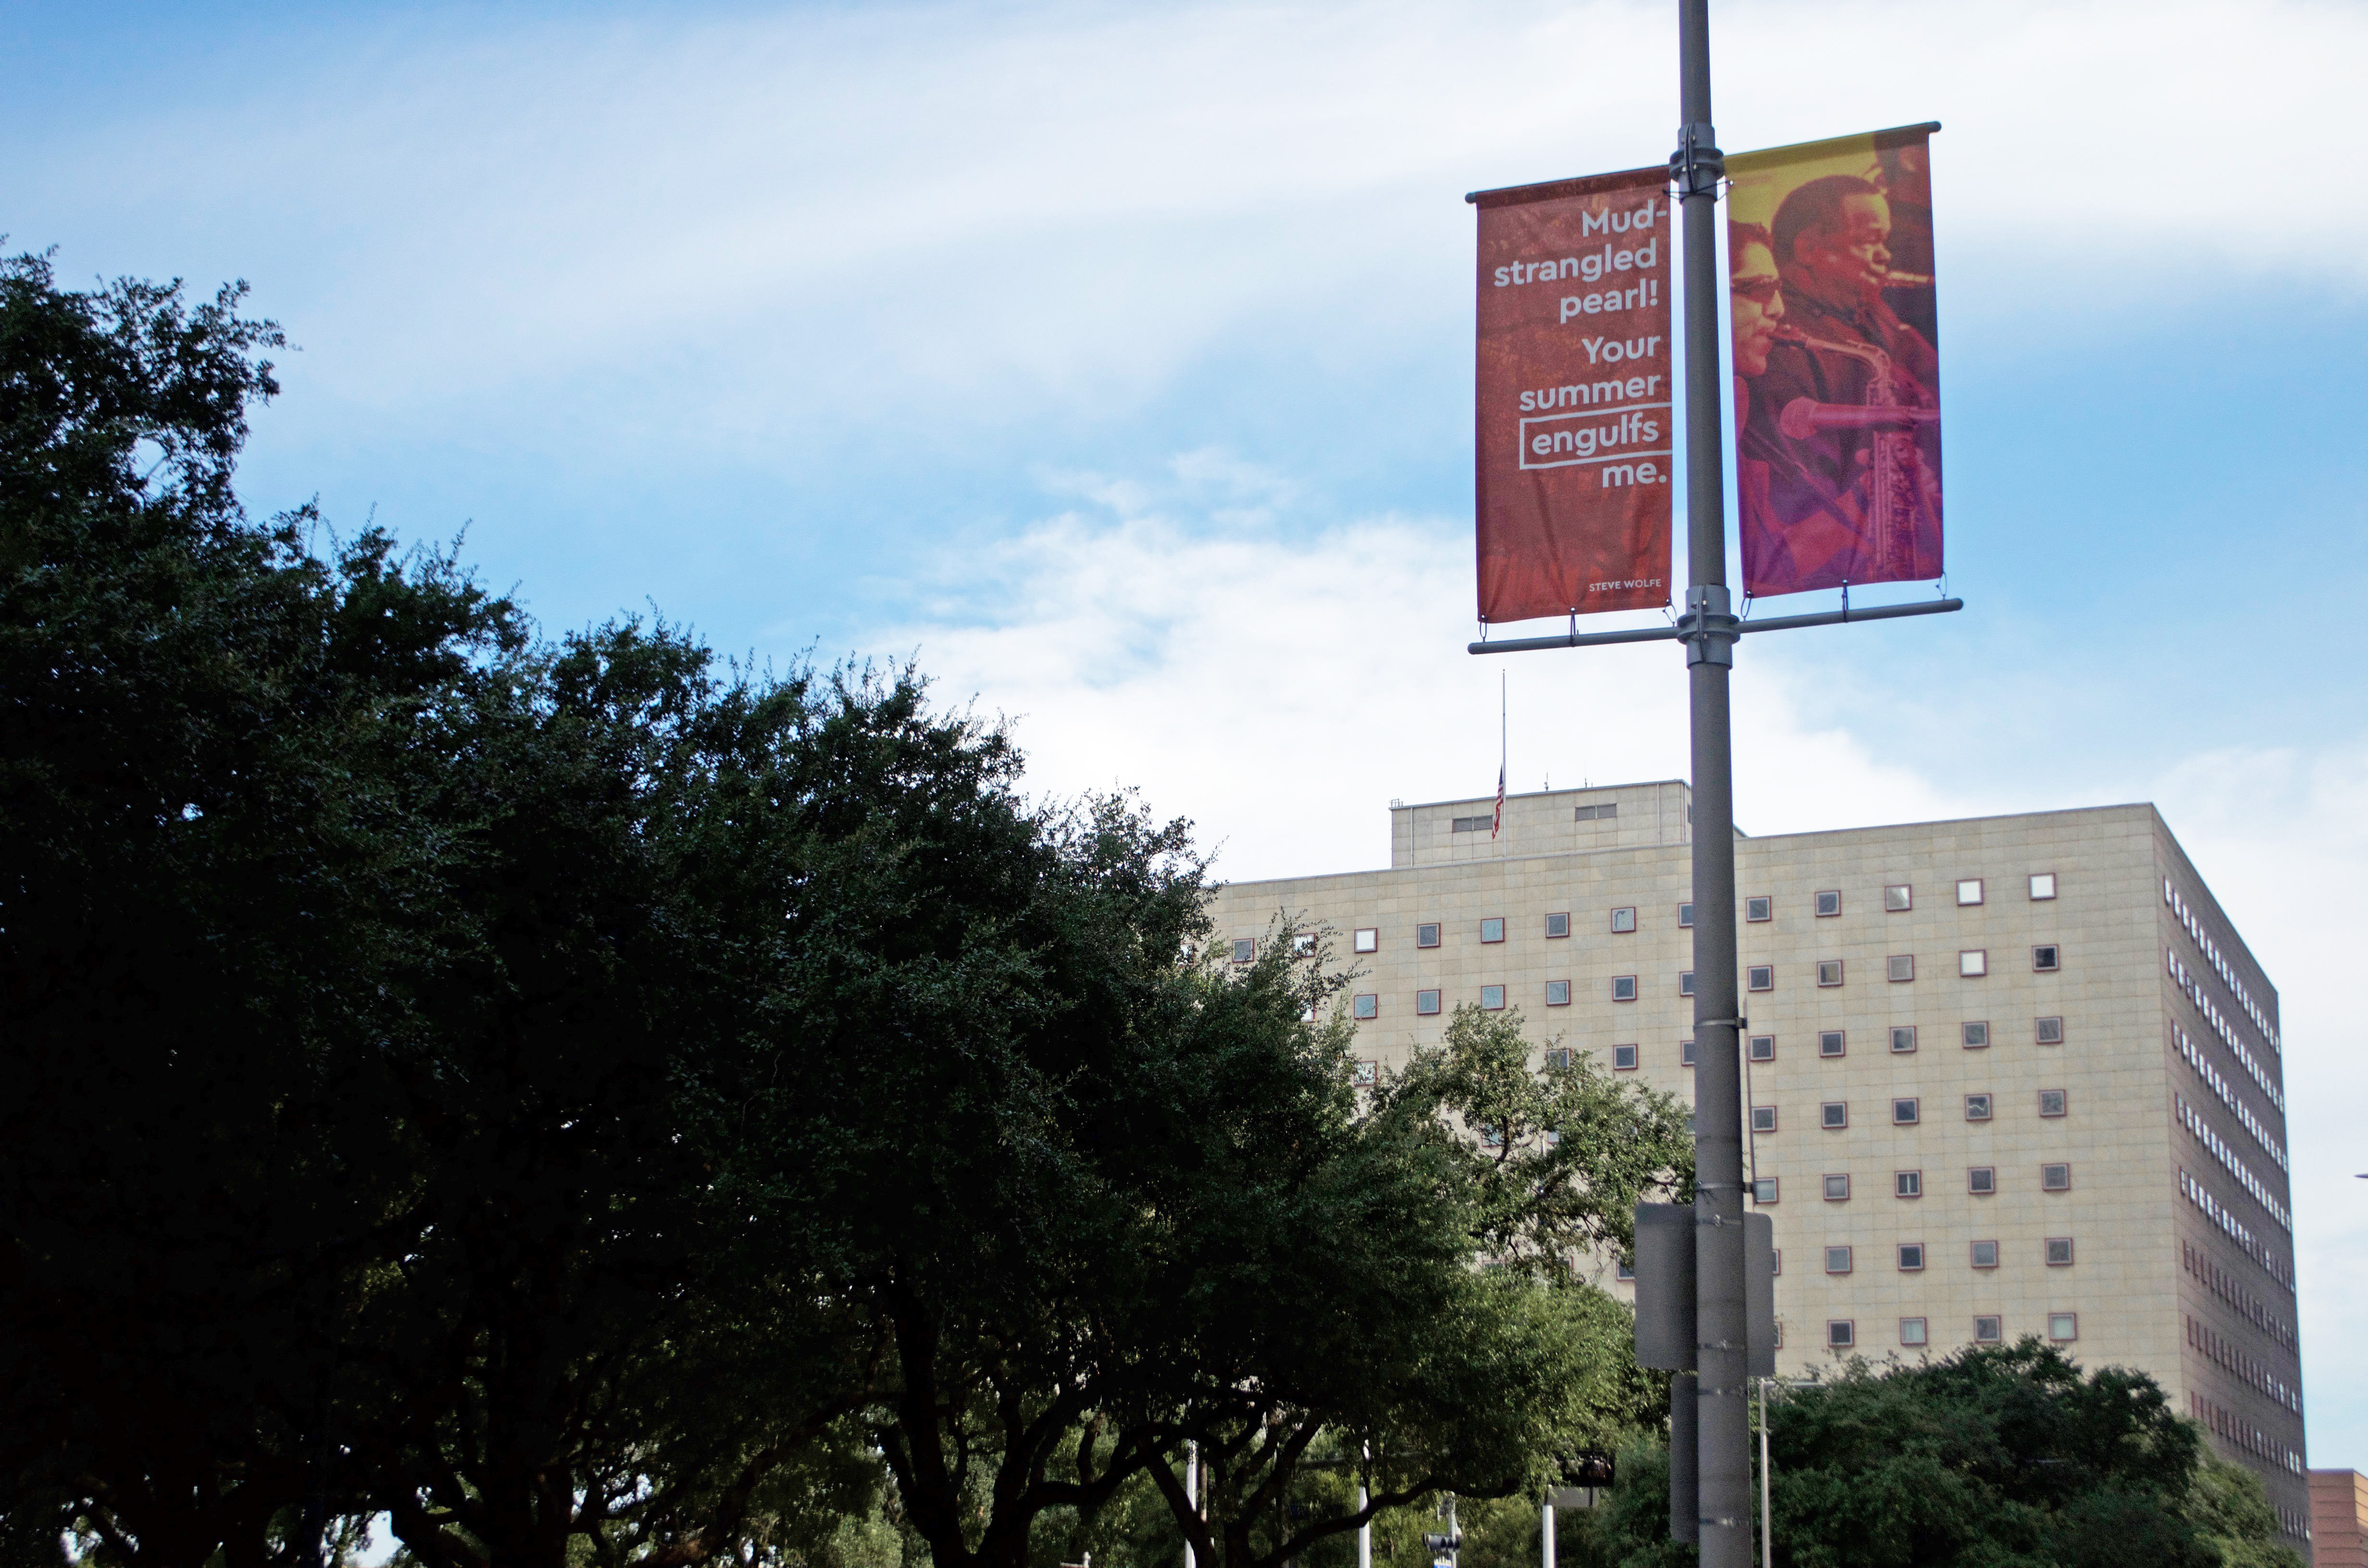 houston-street-banners-12